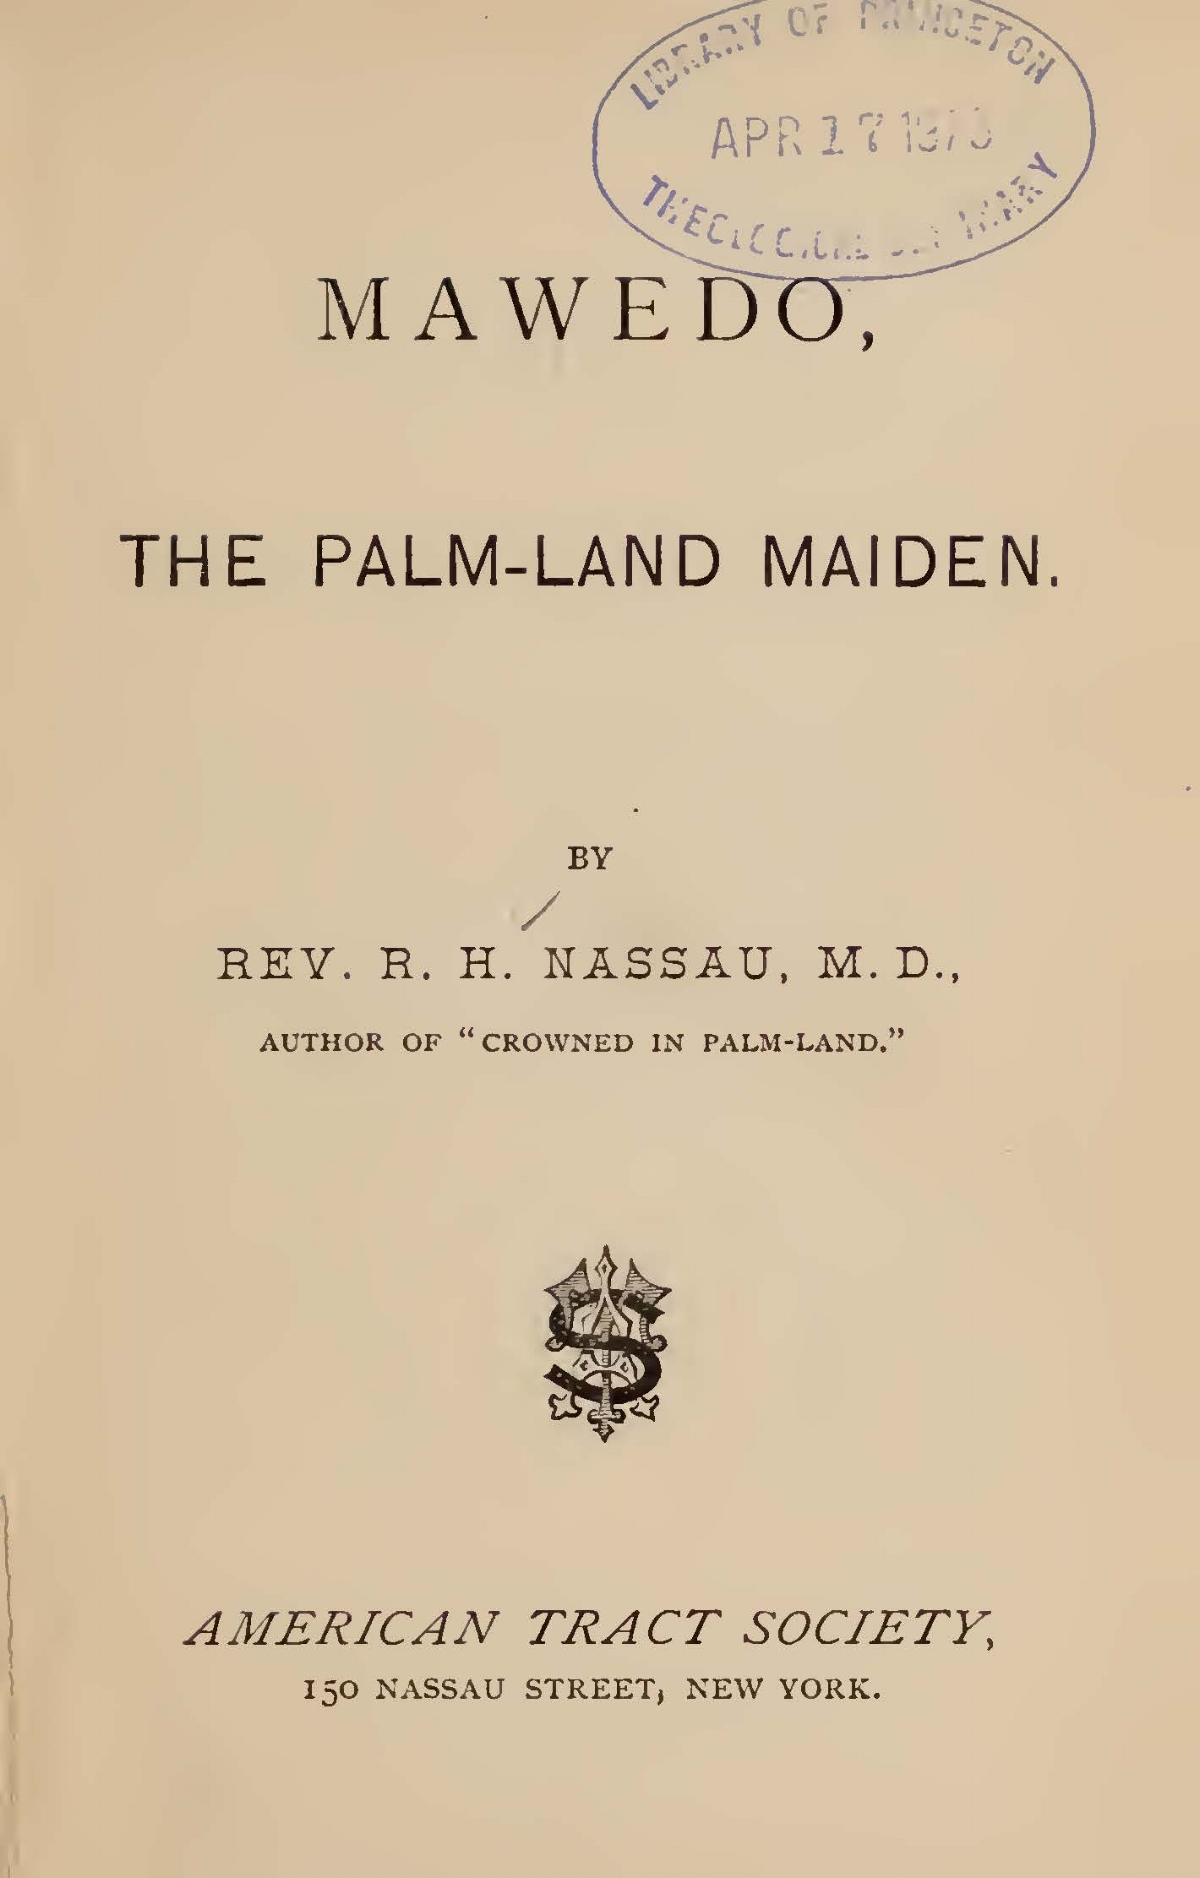 Nassau, Robert Hamill, Mawedo the Palm-Land Maiden Title Page.jpg